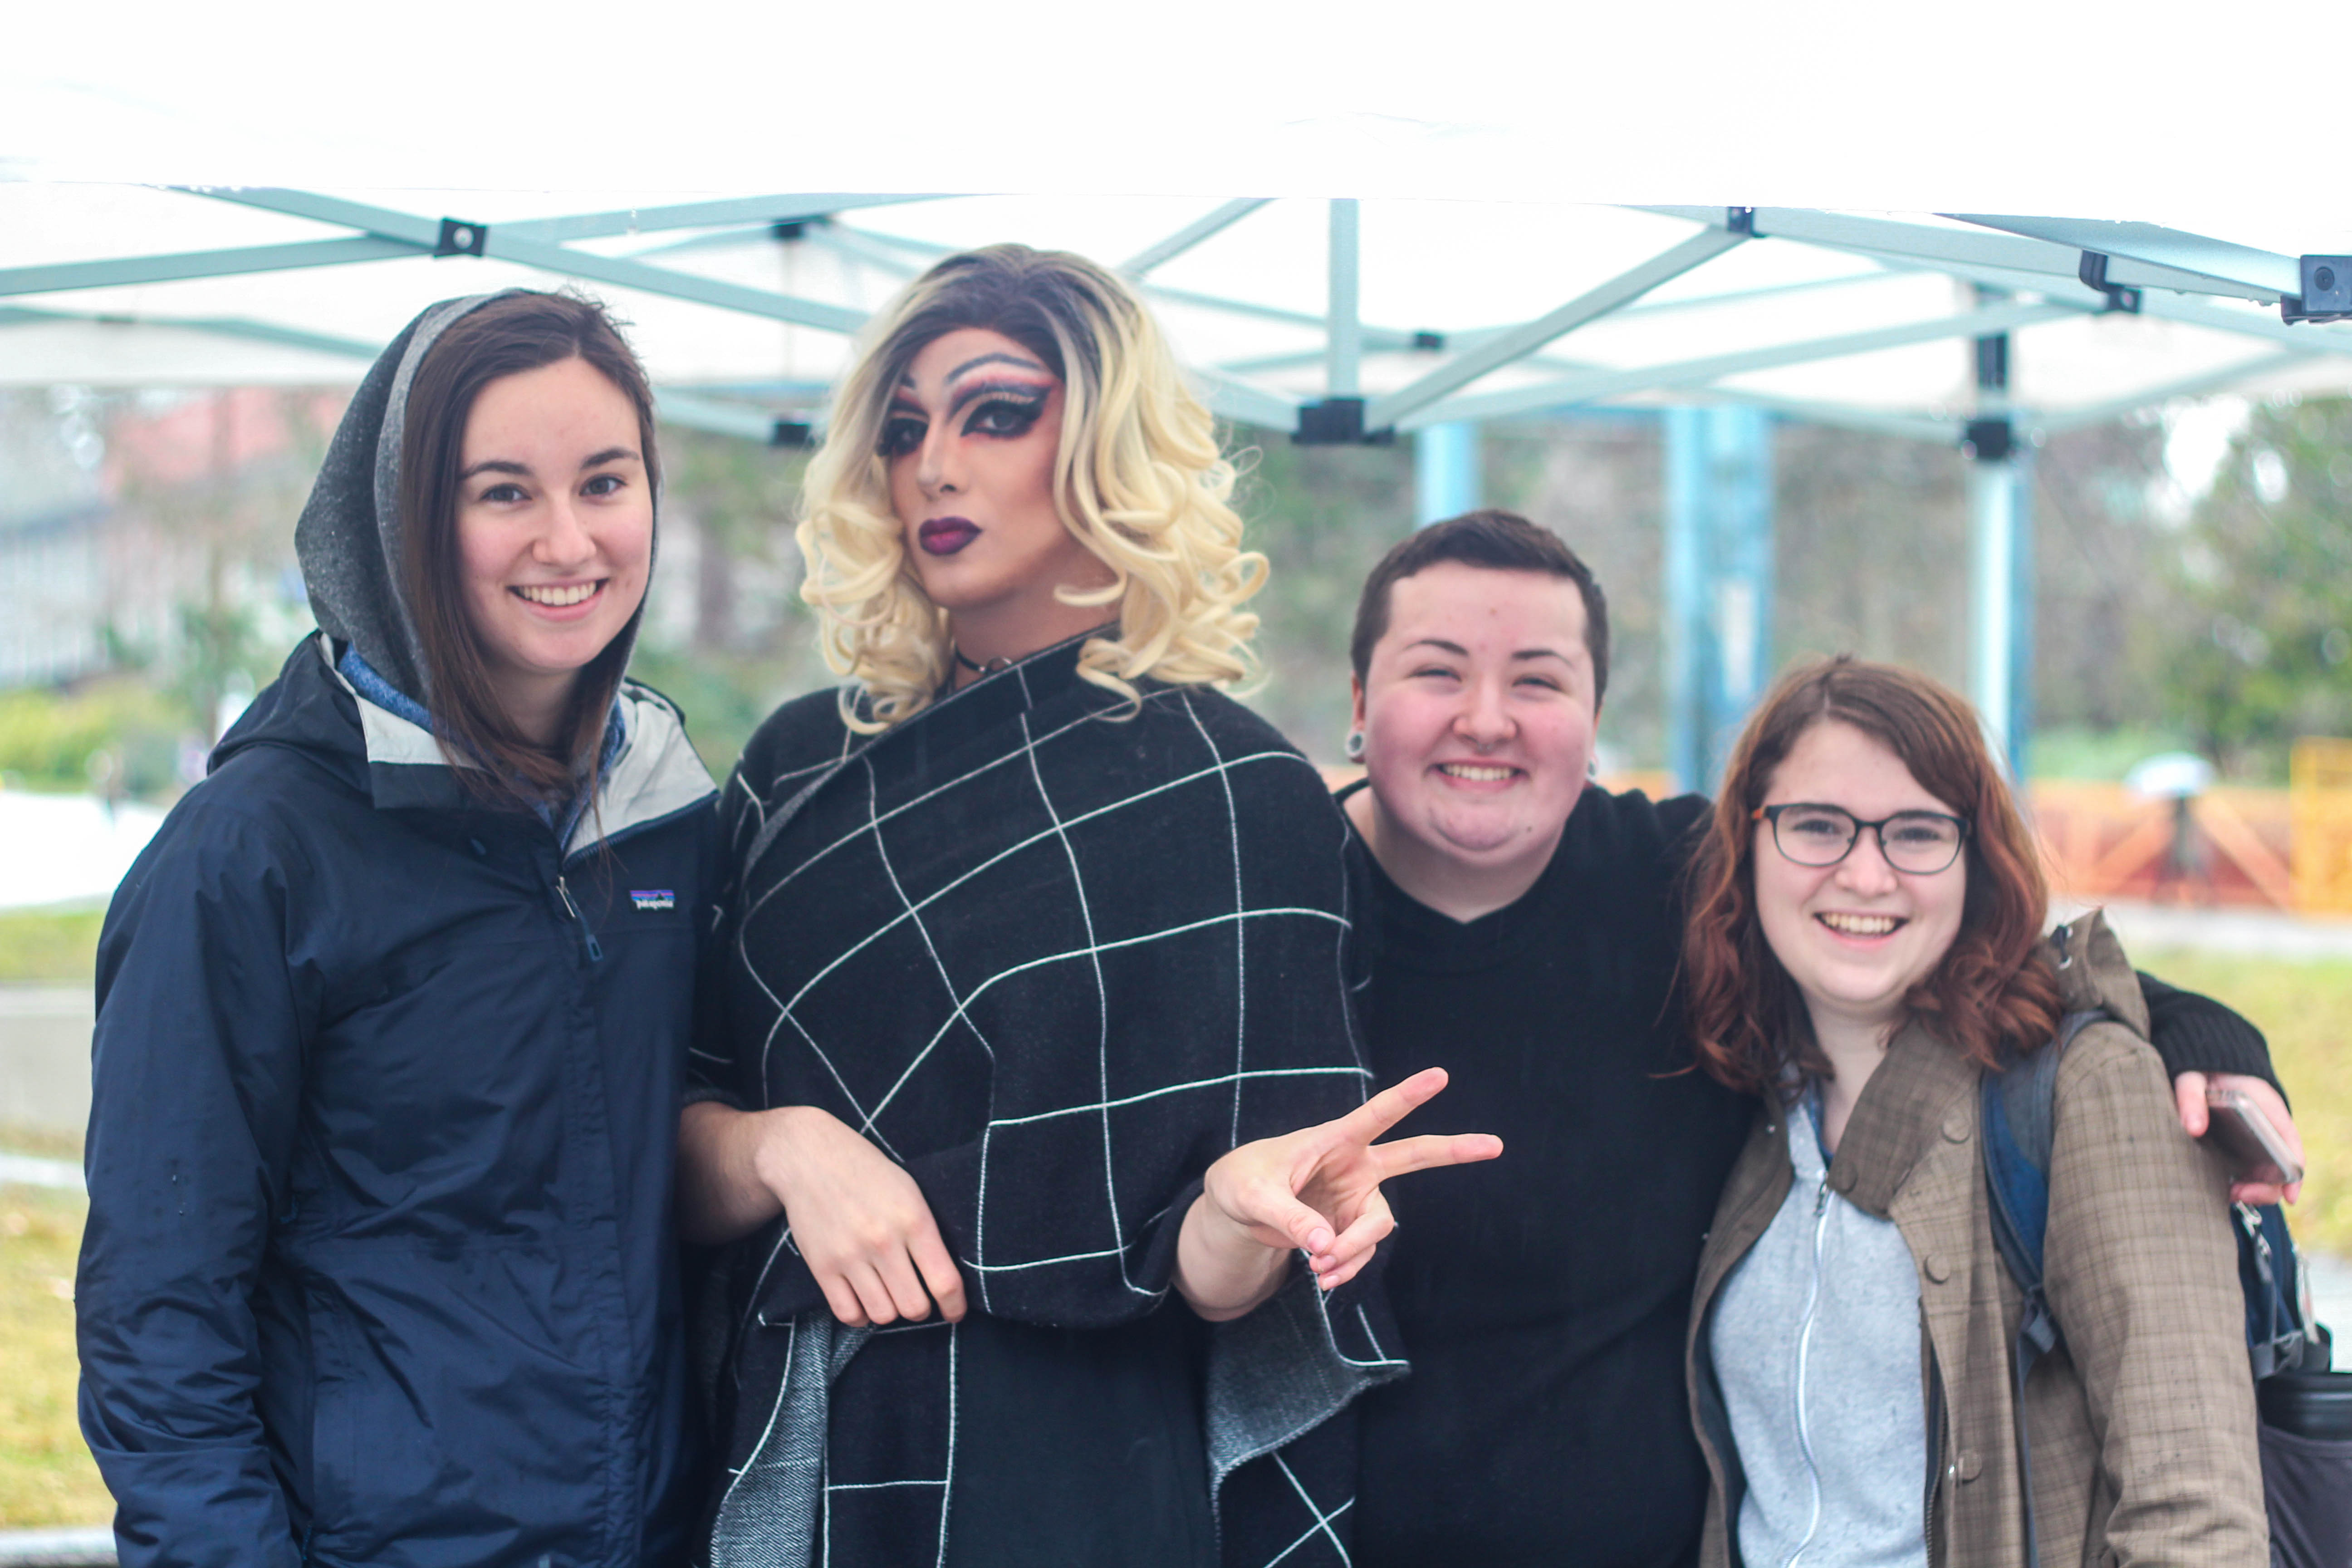 UBC Pride members pose with Donna, a drag performer.